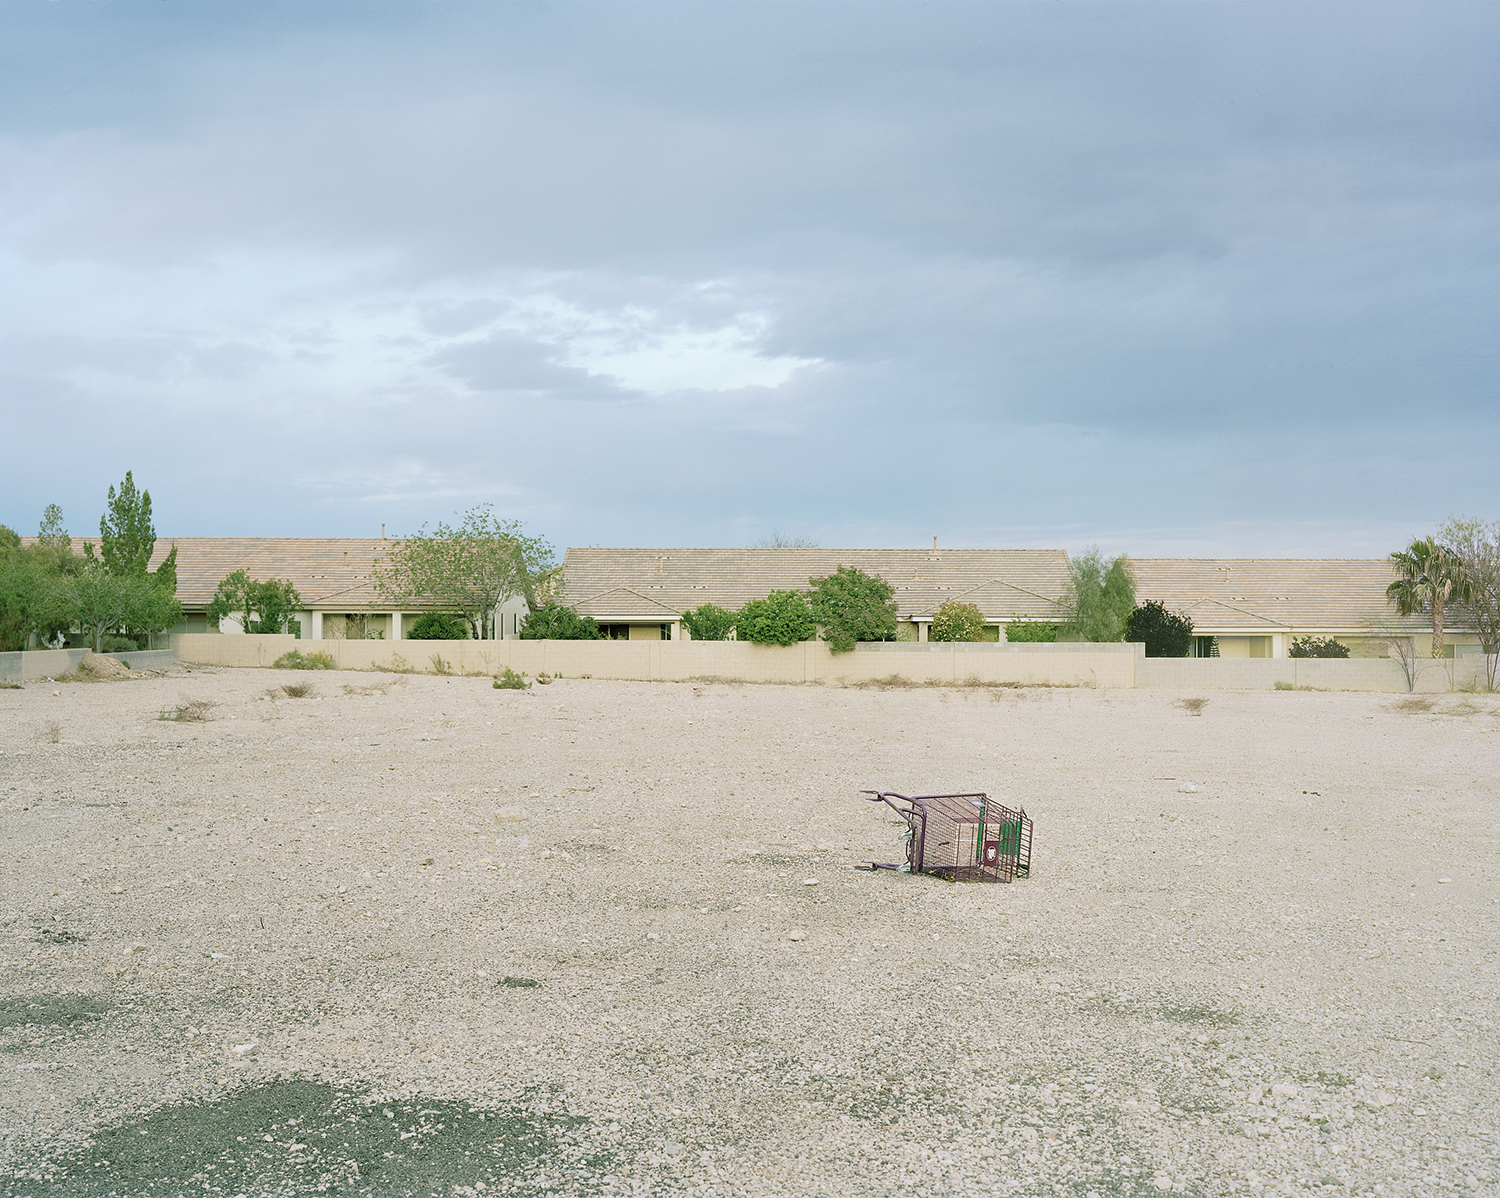 99c Store Cart, Fort Apache and Russel, Summerlin, Las Vegas  from the series  What makes grass grow in the desert